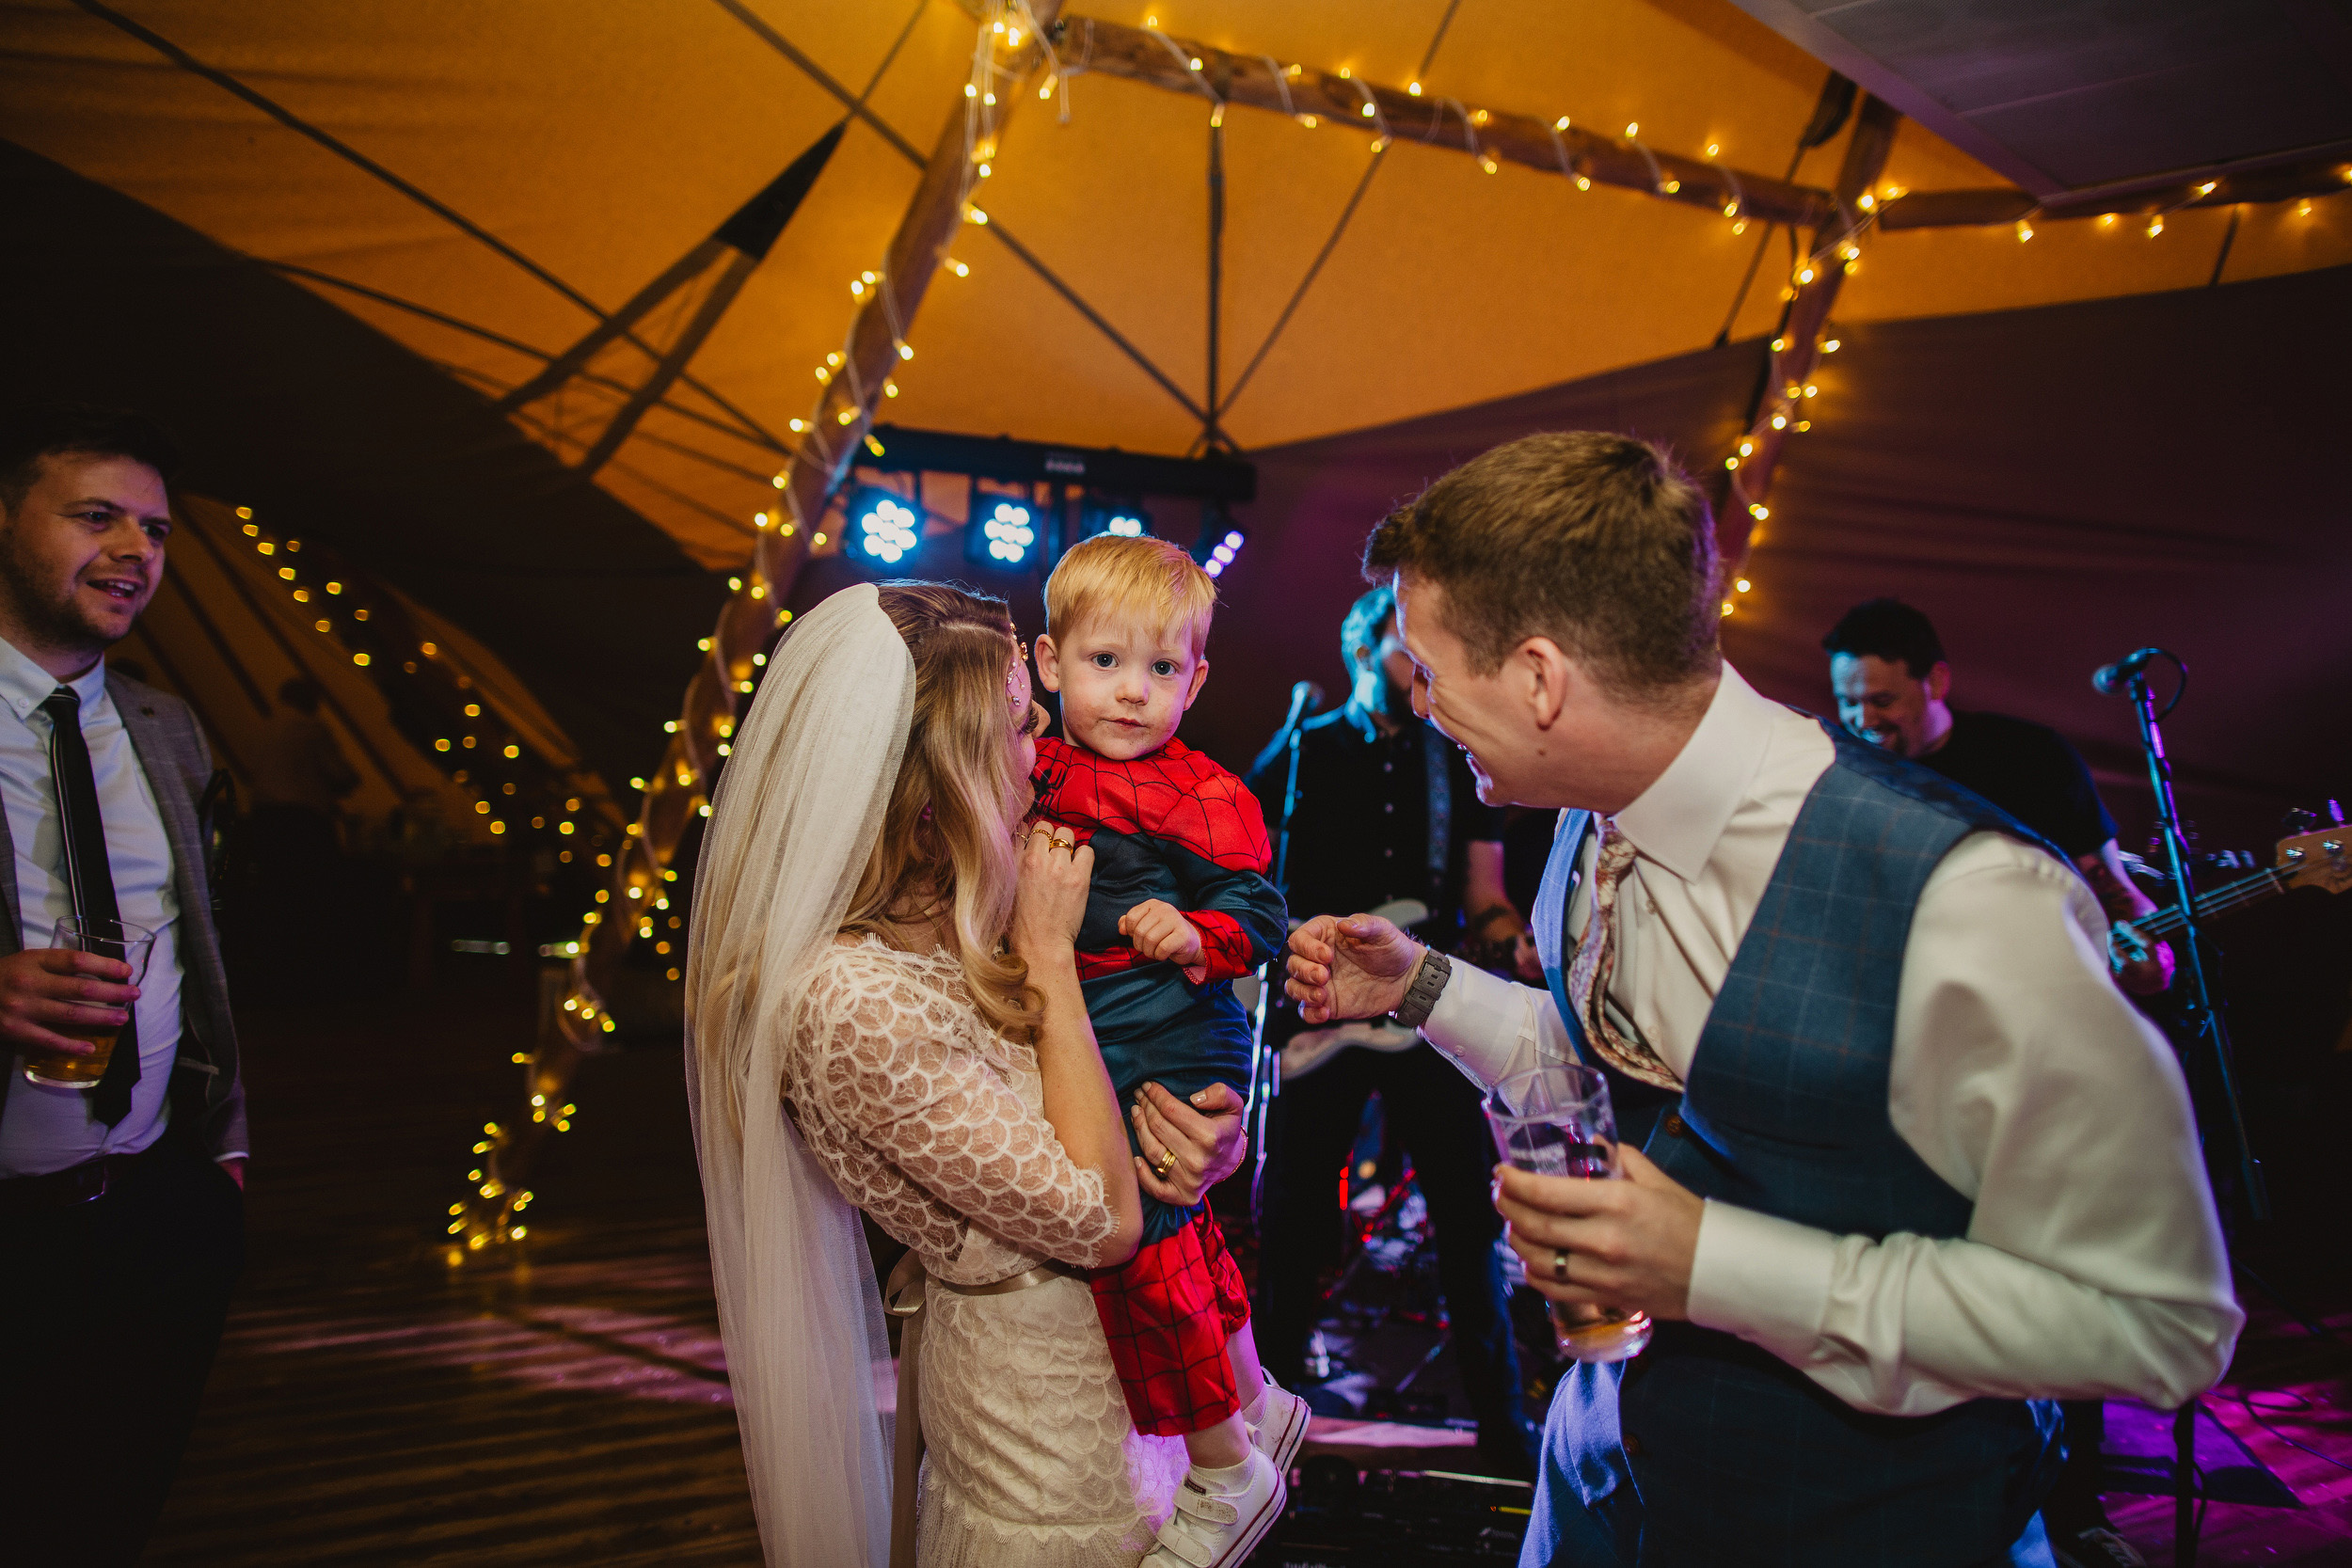 Gemma-Bohemian-Outdoor-Tipi-Wedding-Laid-Back-Relaxed-Family-Wedding-Kate-Beaumont-Astilbe-by-S6-Photography-Sheffield-62.jpg